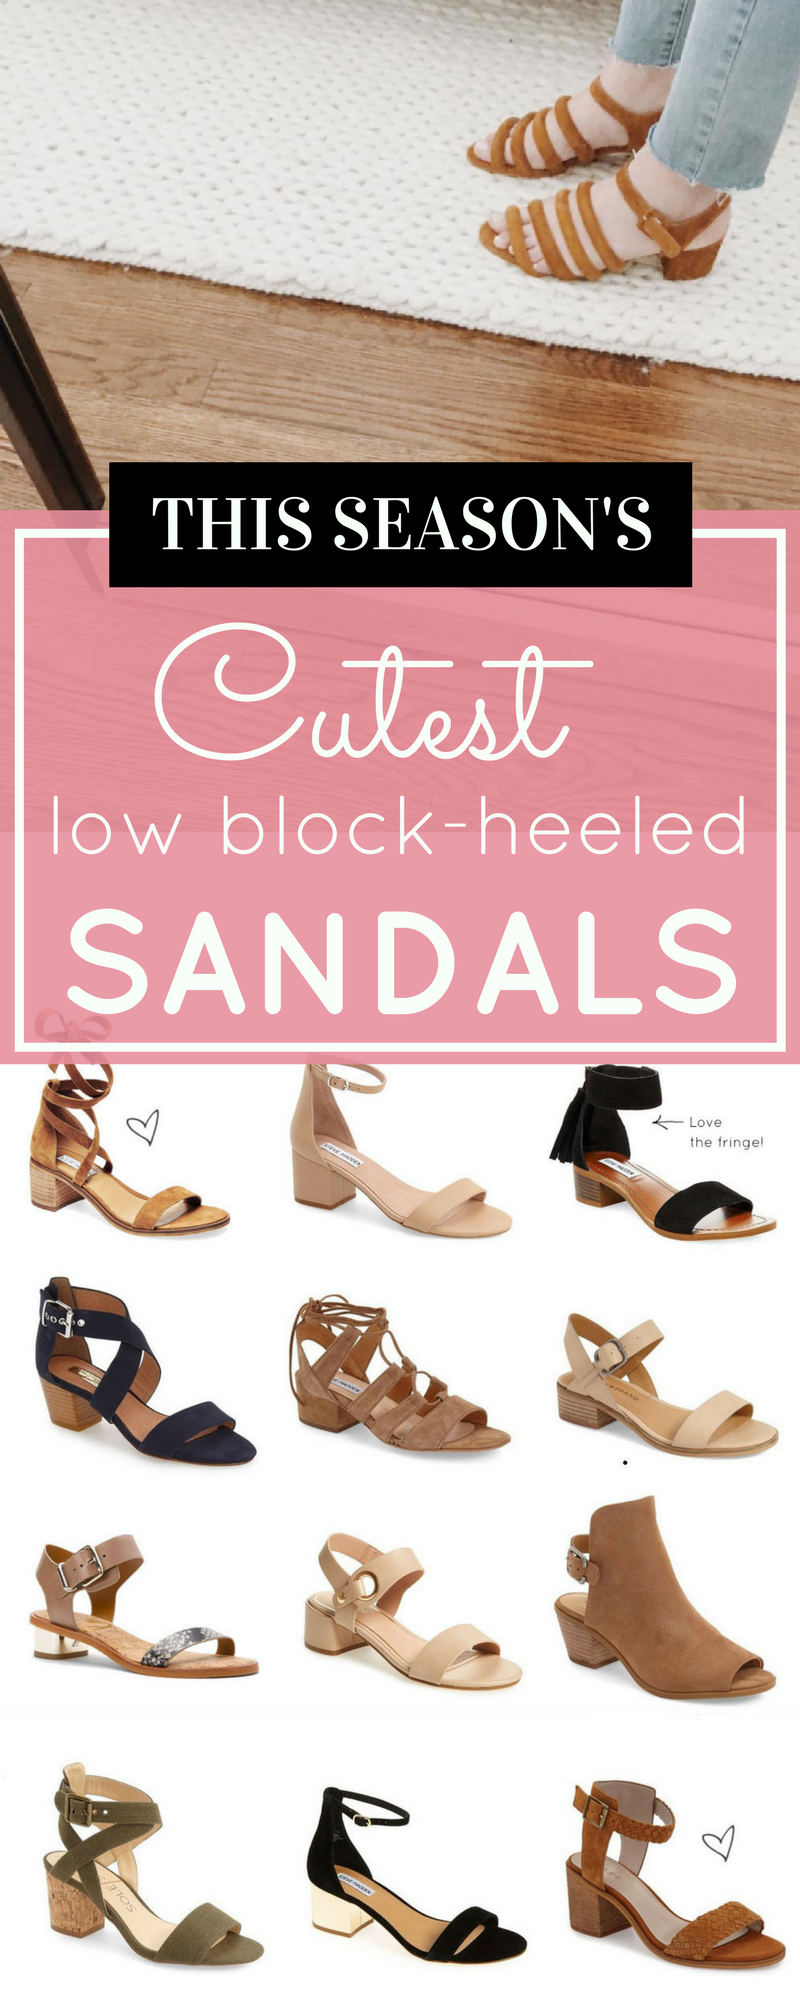 5a2dcd3d9e0f0 Say hello to the season s cutest low block-heeled sandals. These retro  sandals go